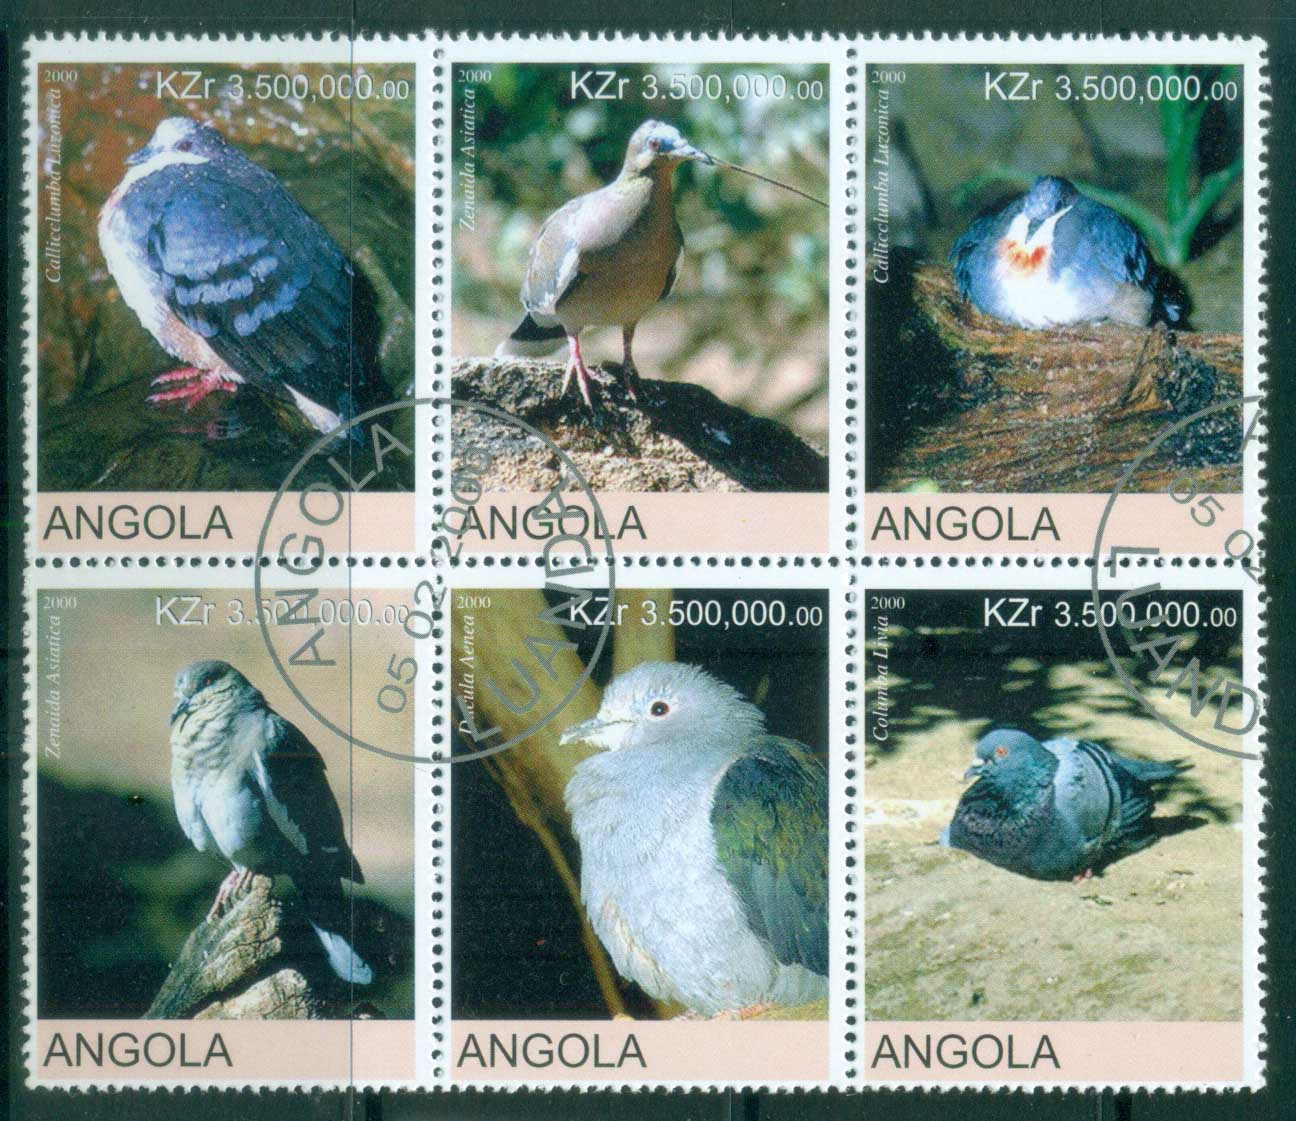 Angola 2000 Birds, Pigeon (Rebel Issue) CTO